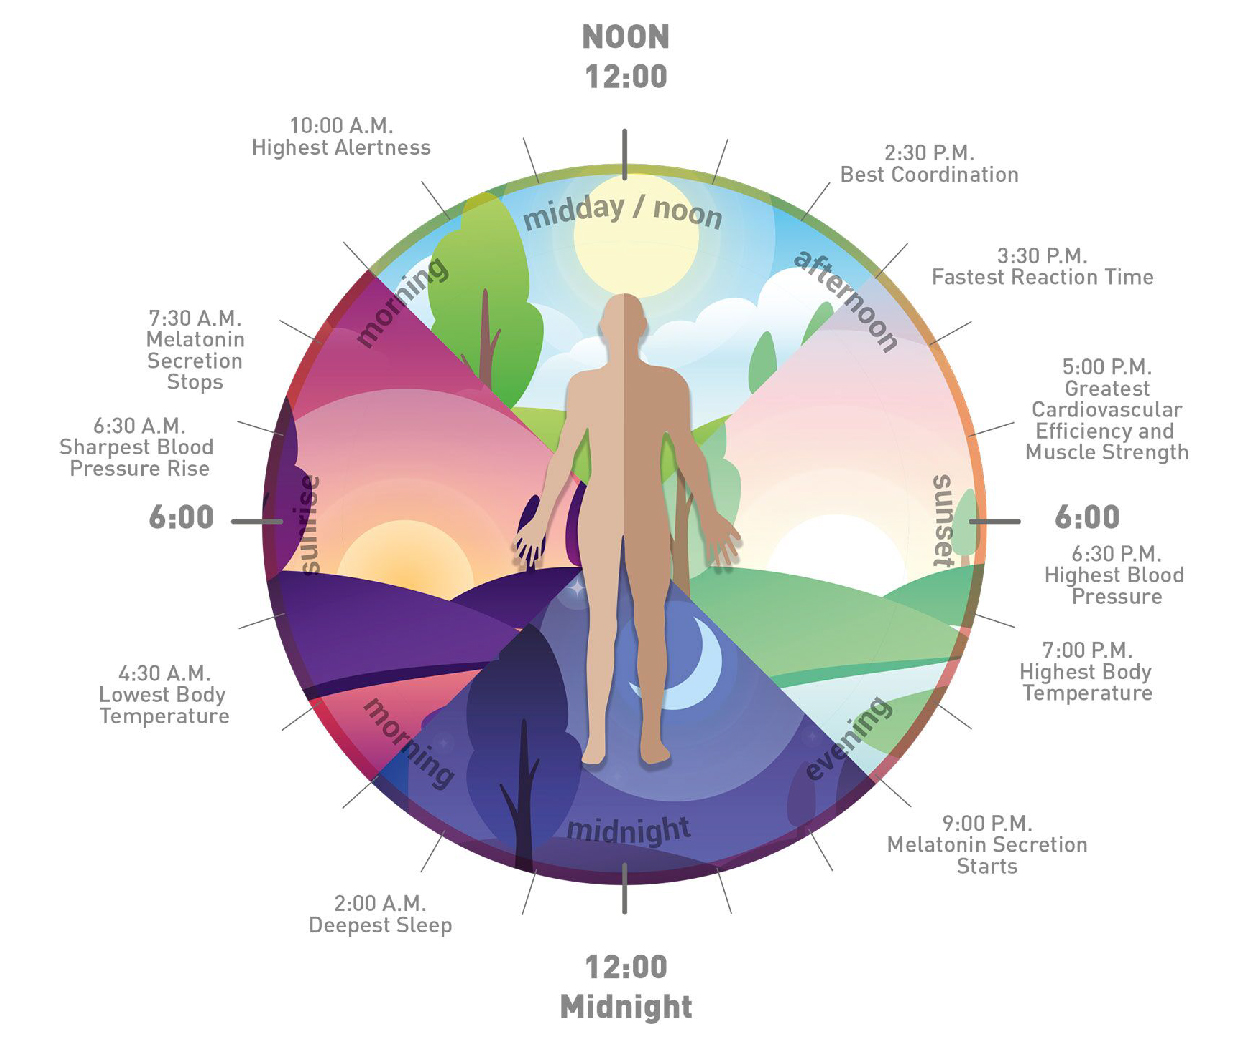 Human Centric Lighting for Better Circadian Rhythm